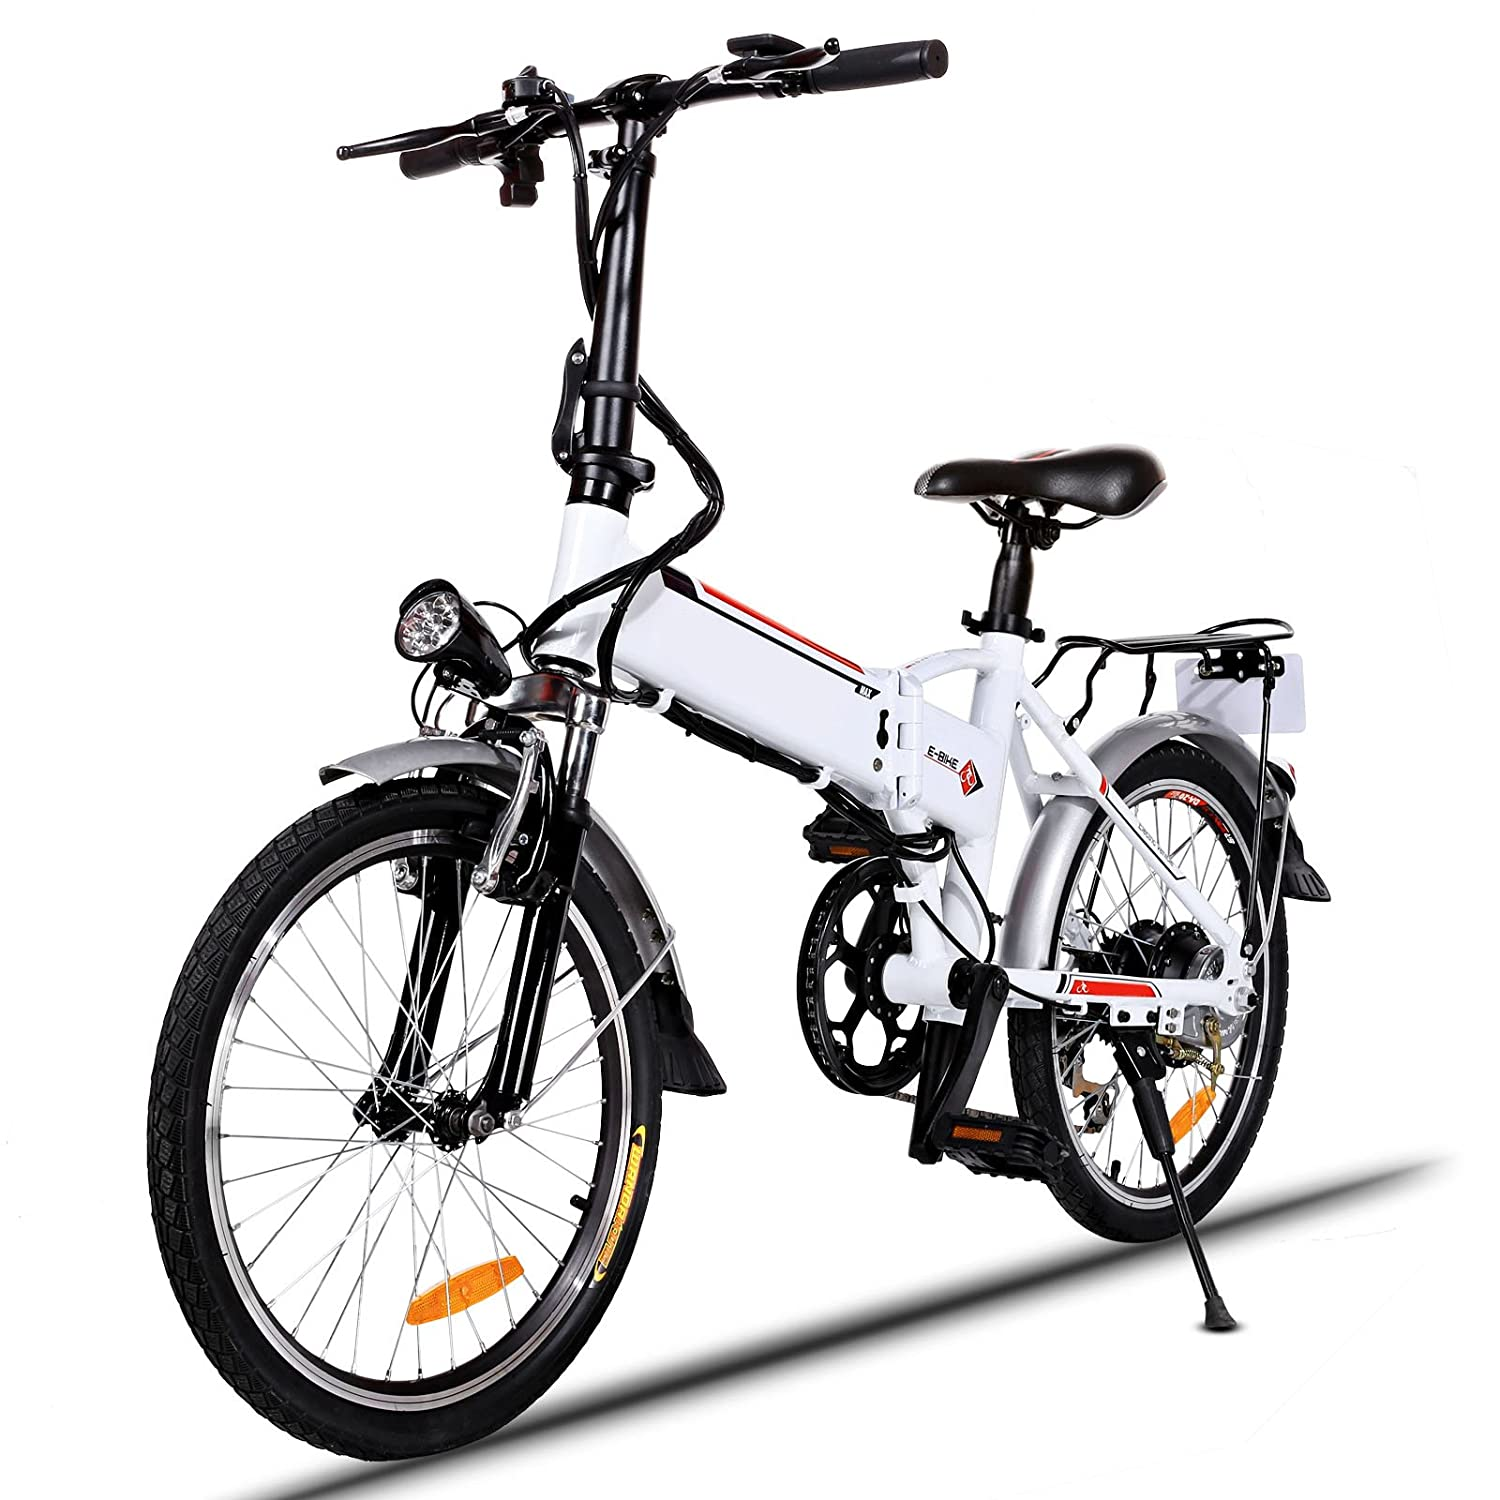 Oanon Electric Bike Review